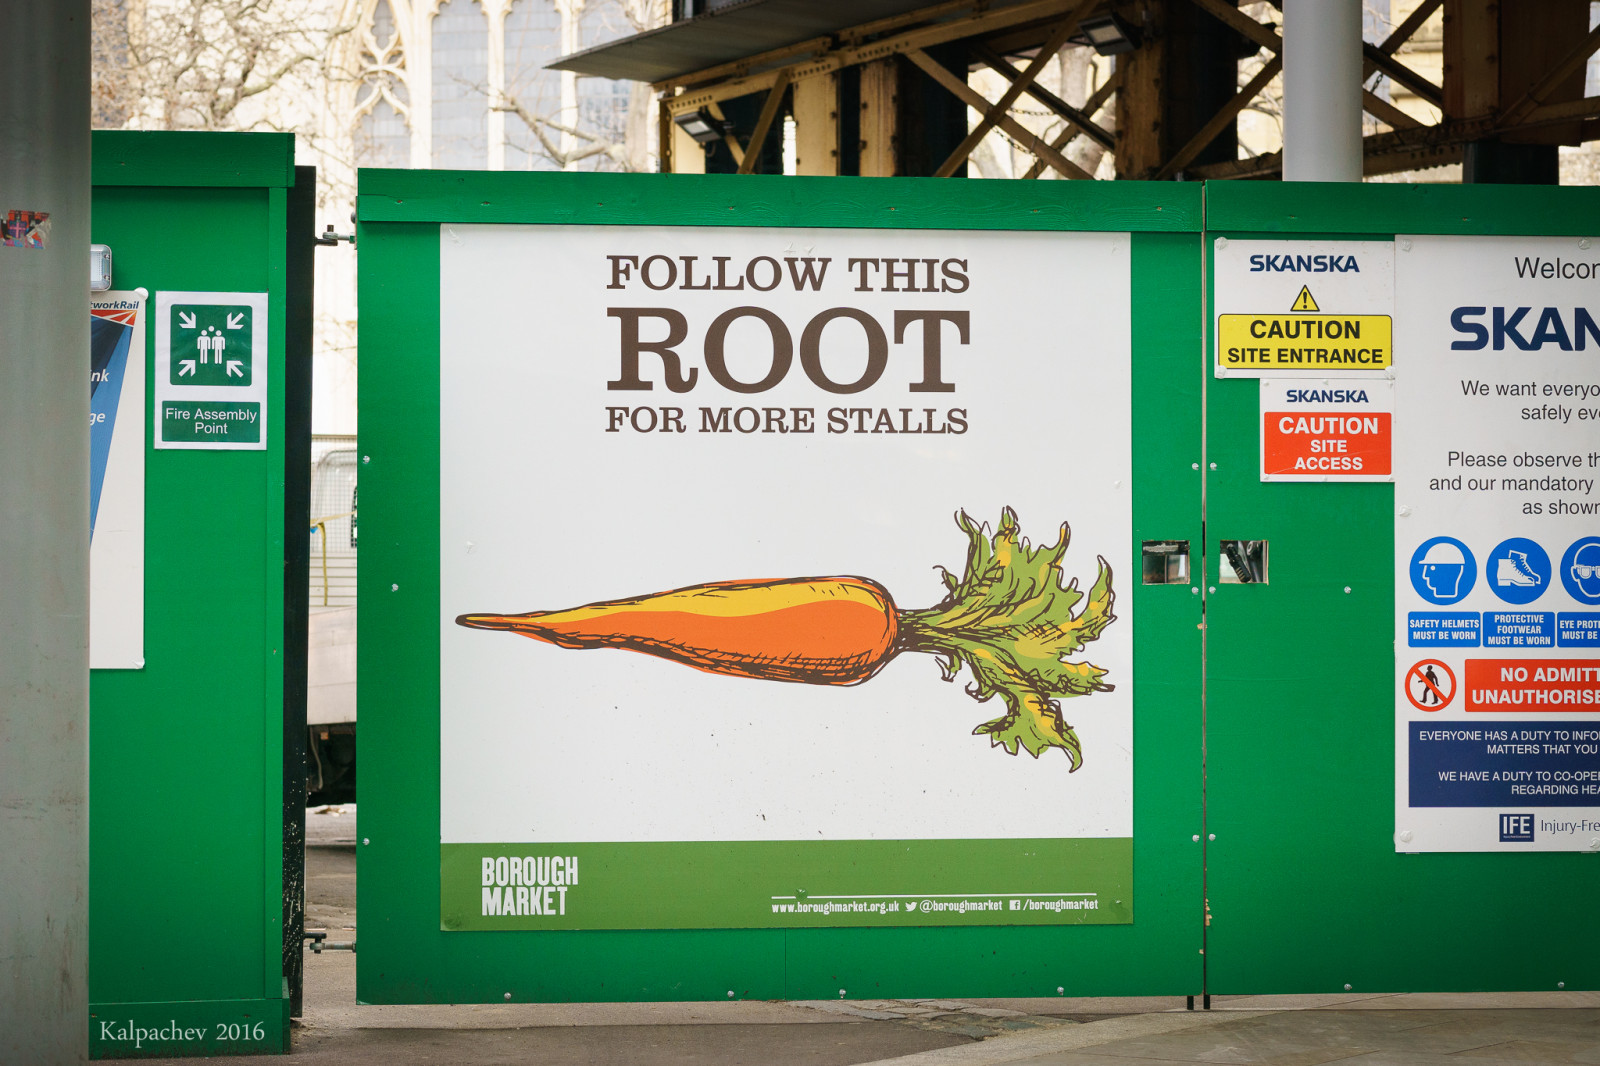 Follow this root March 2016 London, UK